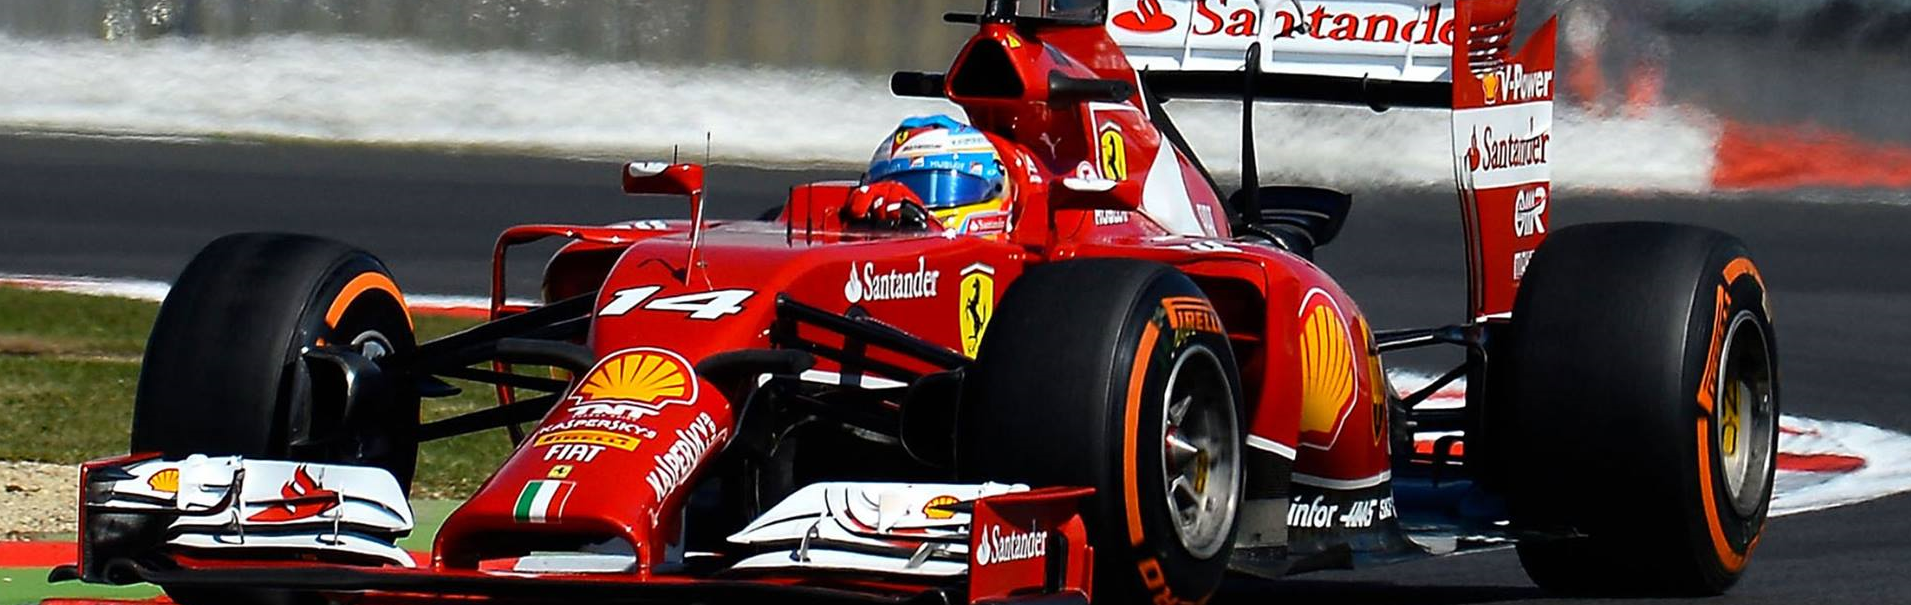 Four-time Formula One World Champion Sebastian Vettel, found himself out of the second round of competition in Bahrain before the race even started. Vettel experienced a catastrophic engine failure during the Sakhir formation lap that resulted in an early retirement and plenty of concerns about Ferrari's engine reliability in 2016. This is the second engine failure for Scuderia Ferrari in as little as two weeks with Kimi Raikkonen receiving zero points in Australia due to a failure with the turbo charger. Early season engine woes during both weeks of competition are raising concerns that Ferrari's dreams of ending Mercedes dominance may be over before the season truly get under way.